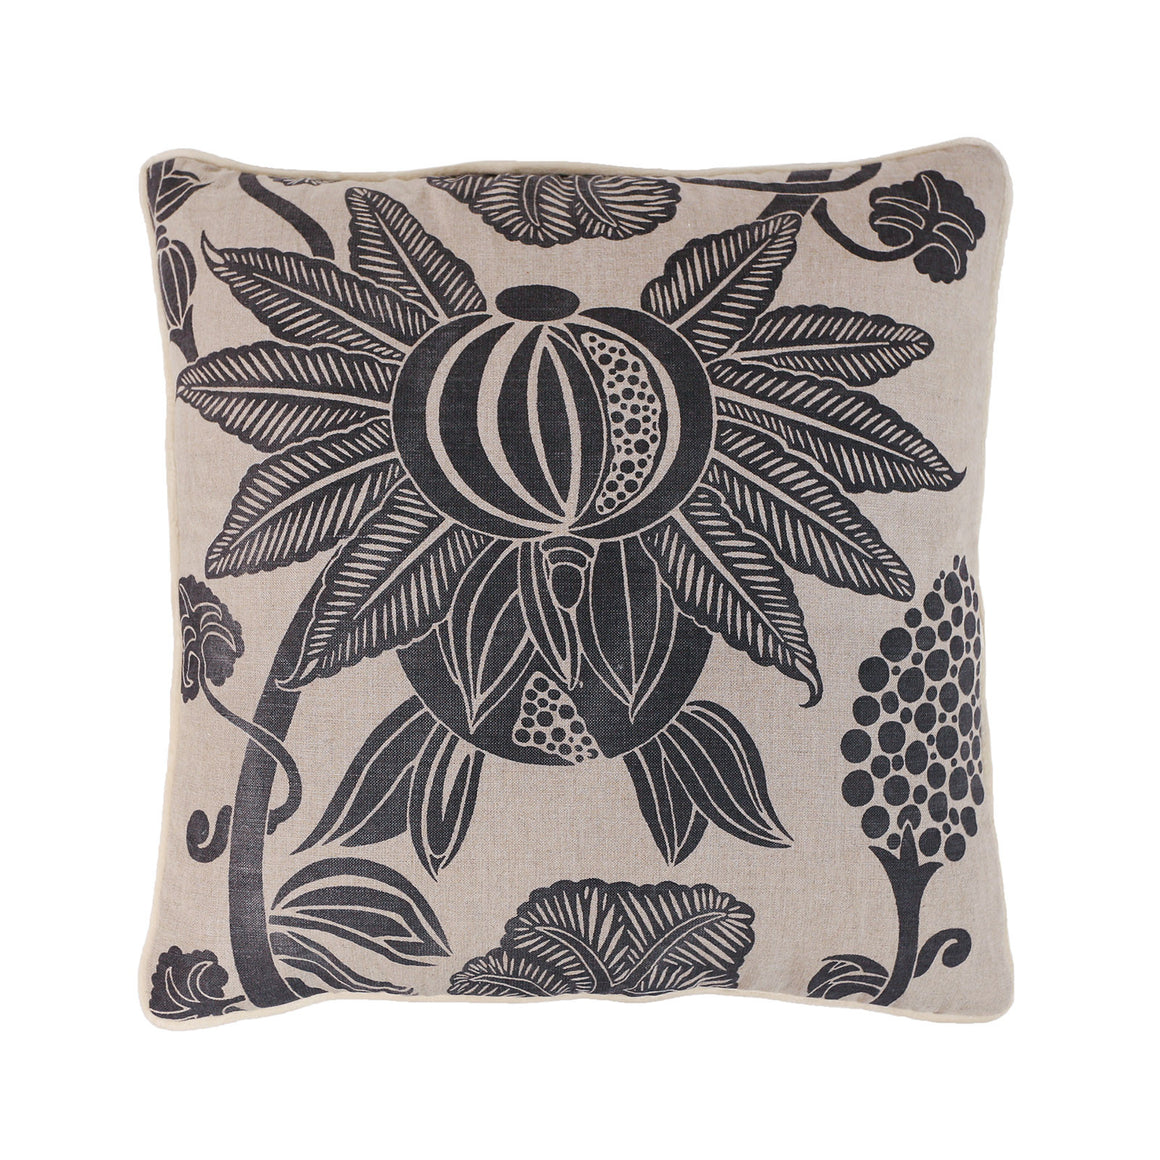 Pomegranate cushion - charcoal